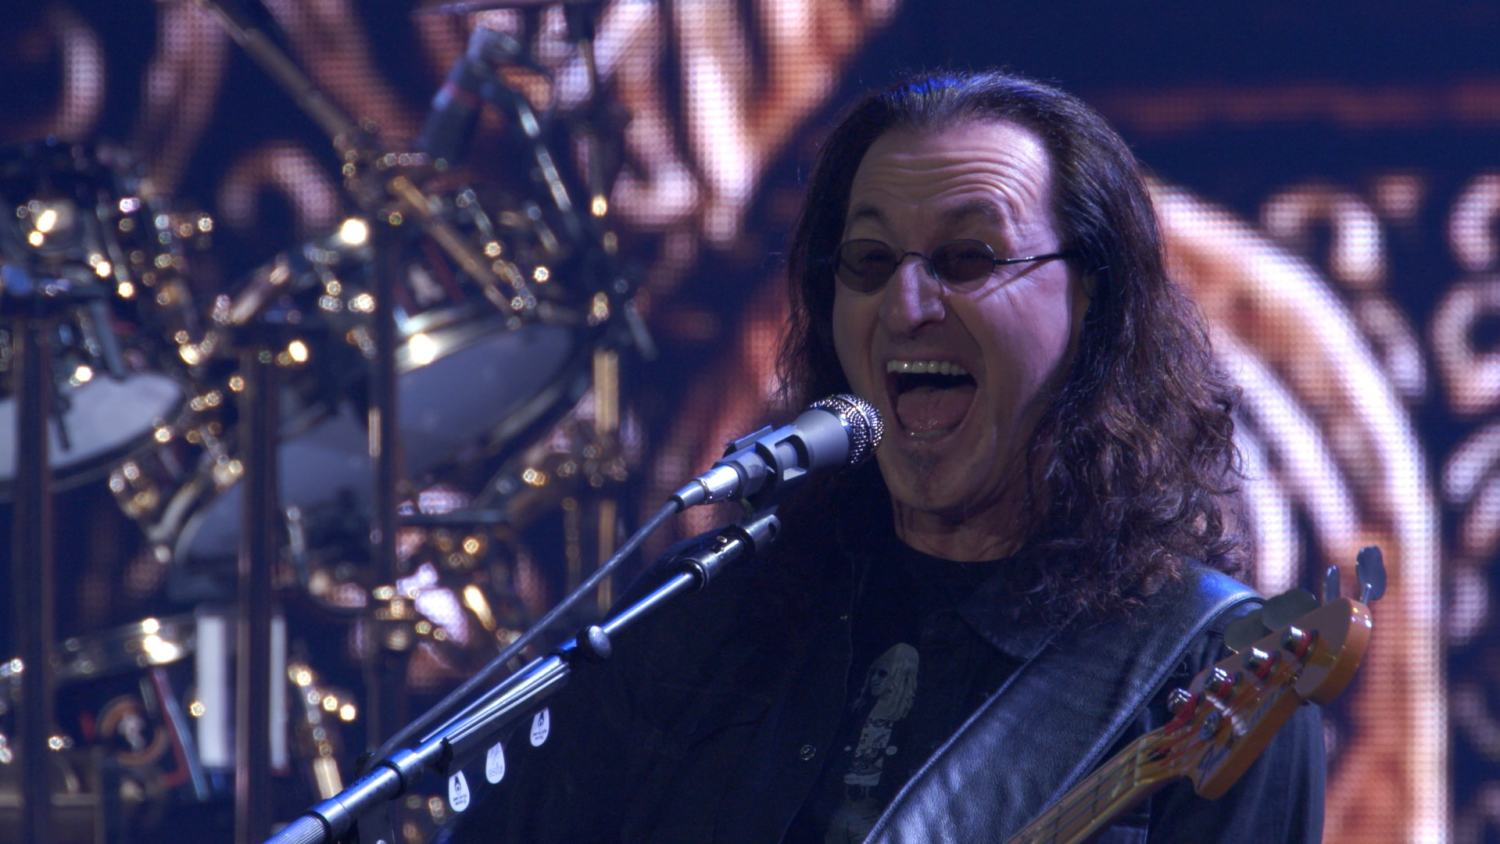 Geddy Lee Cinema Strangiato